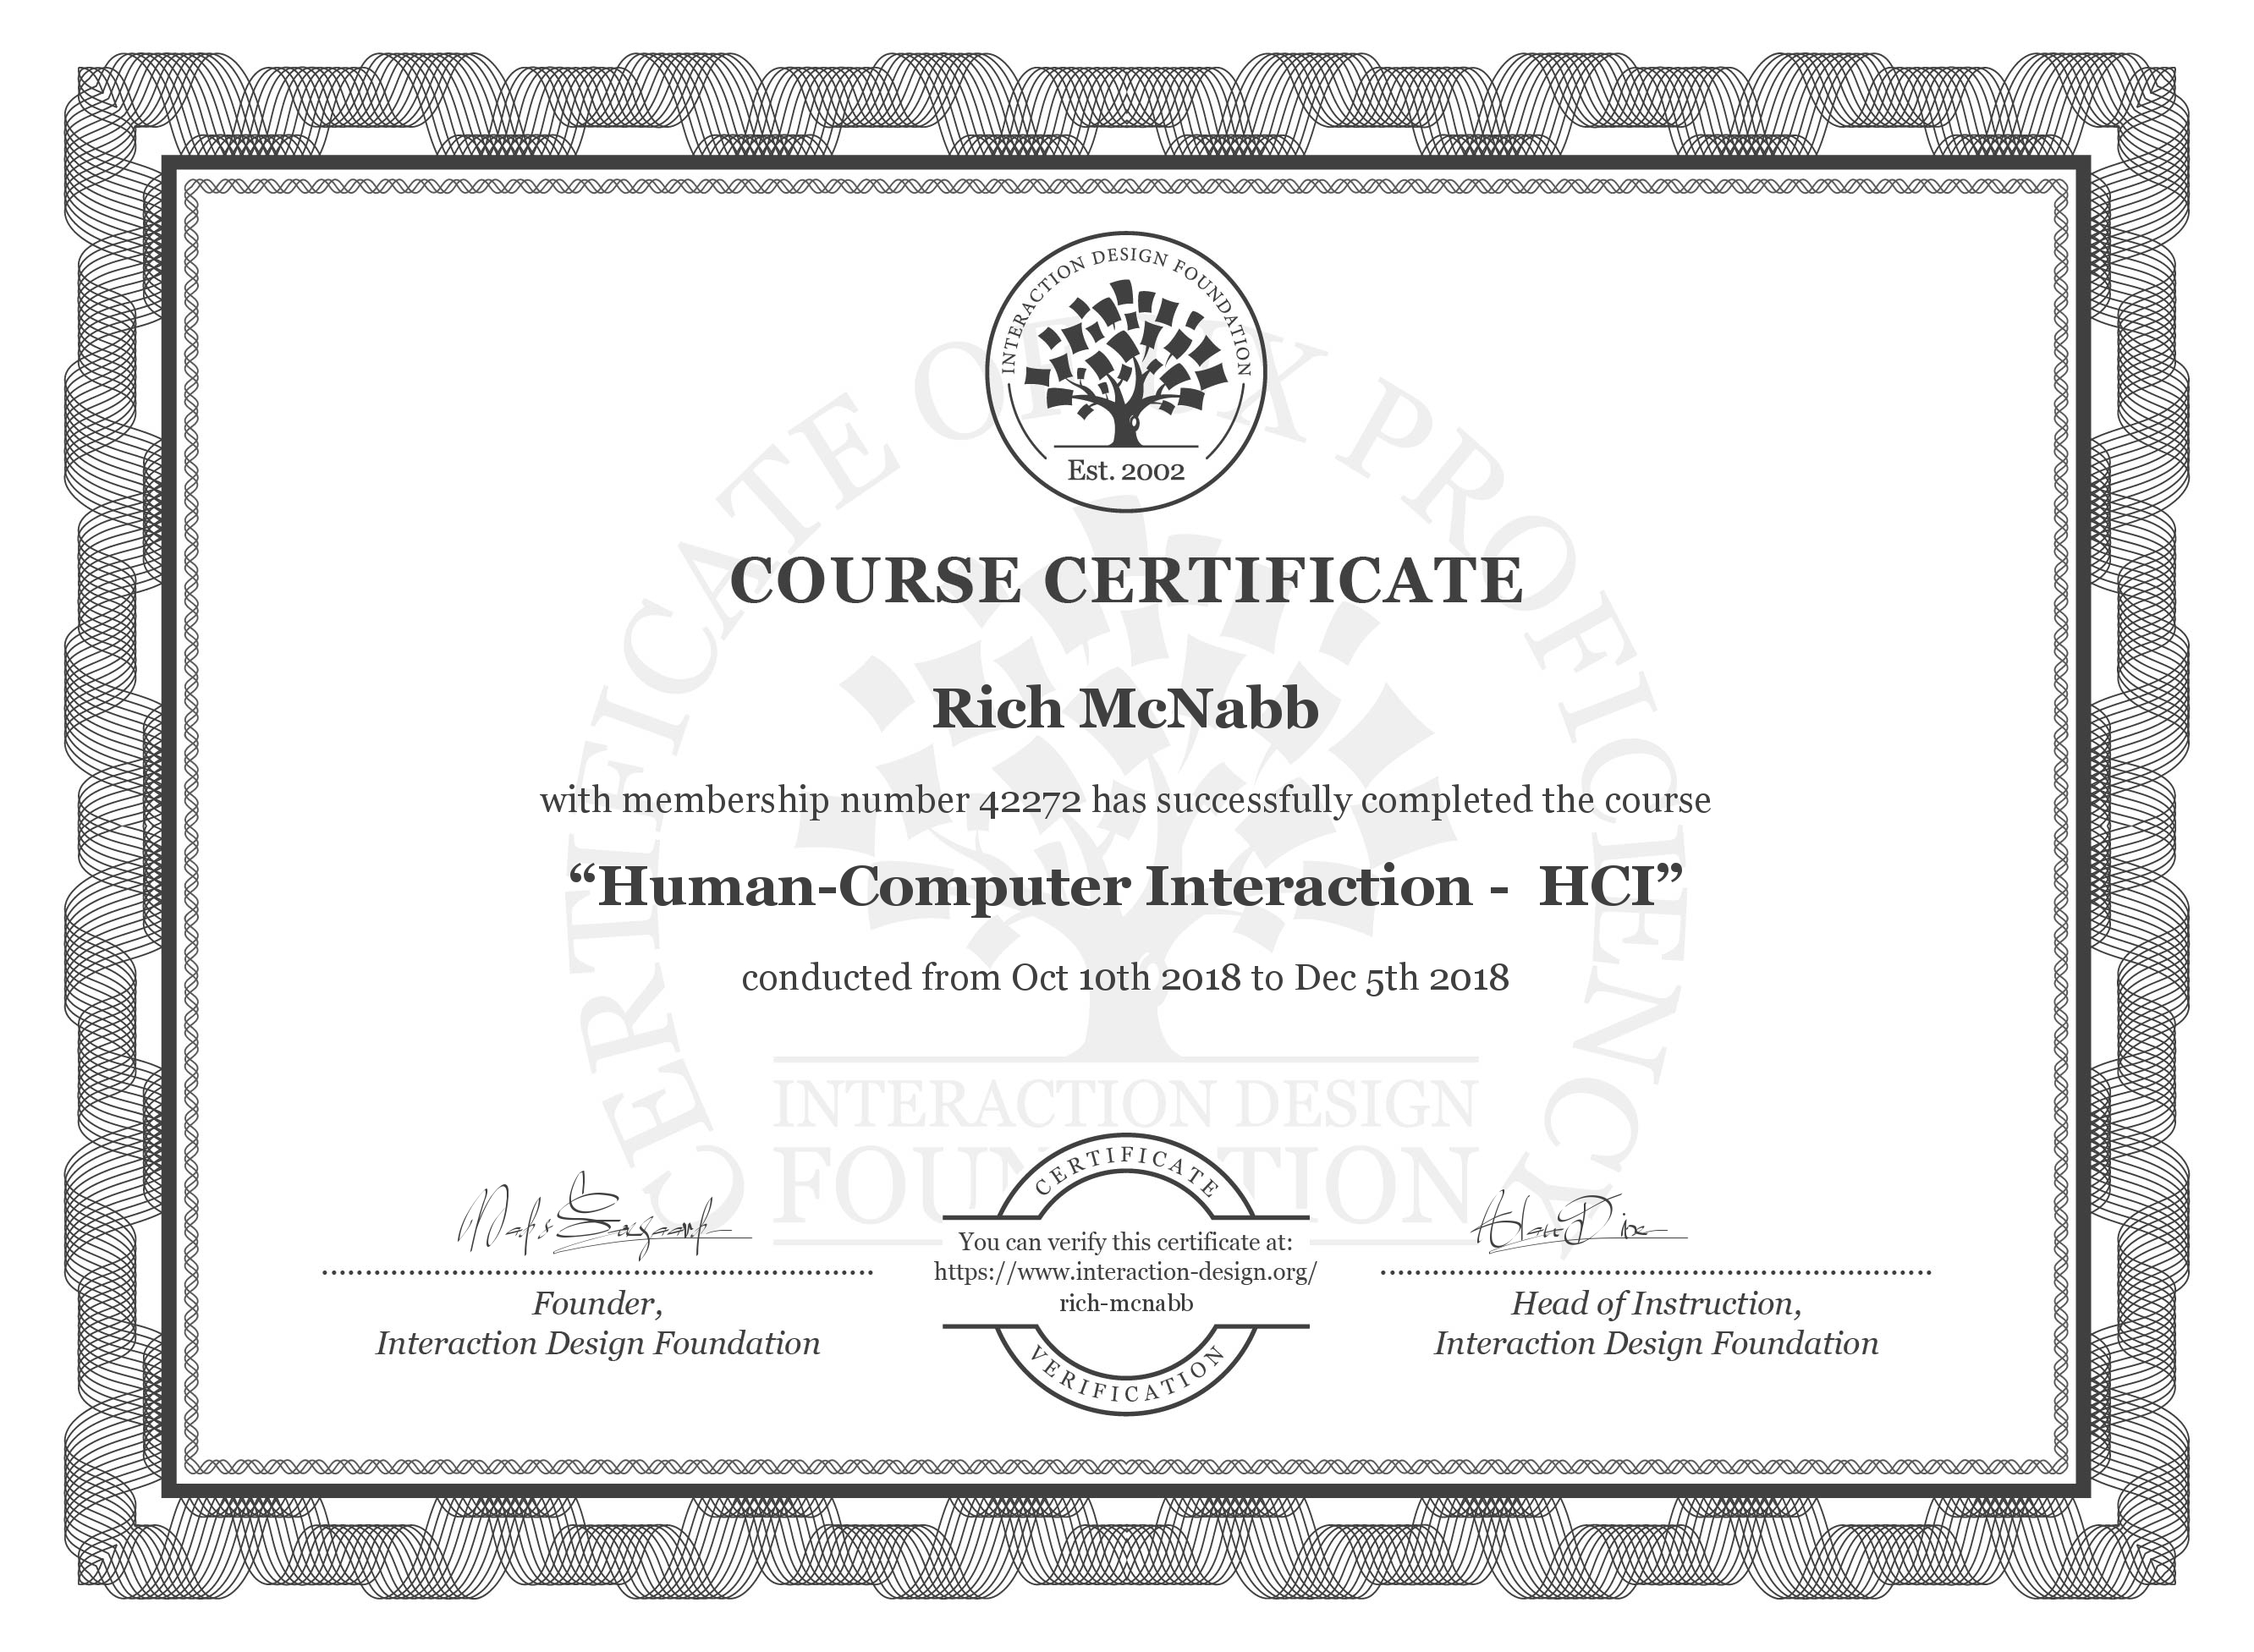 Human-Computer Interaction - HCI